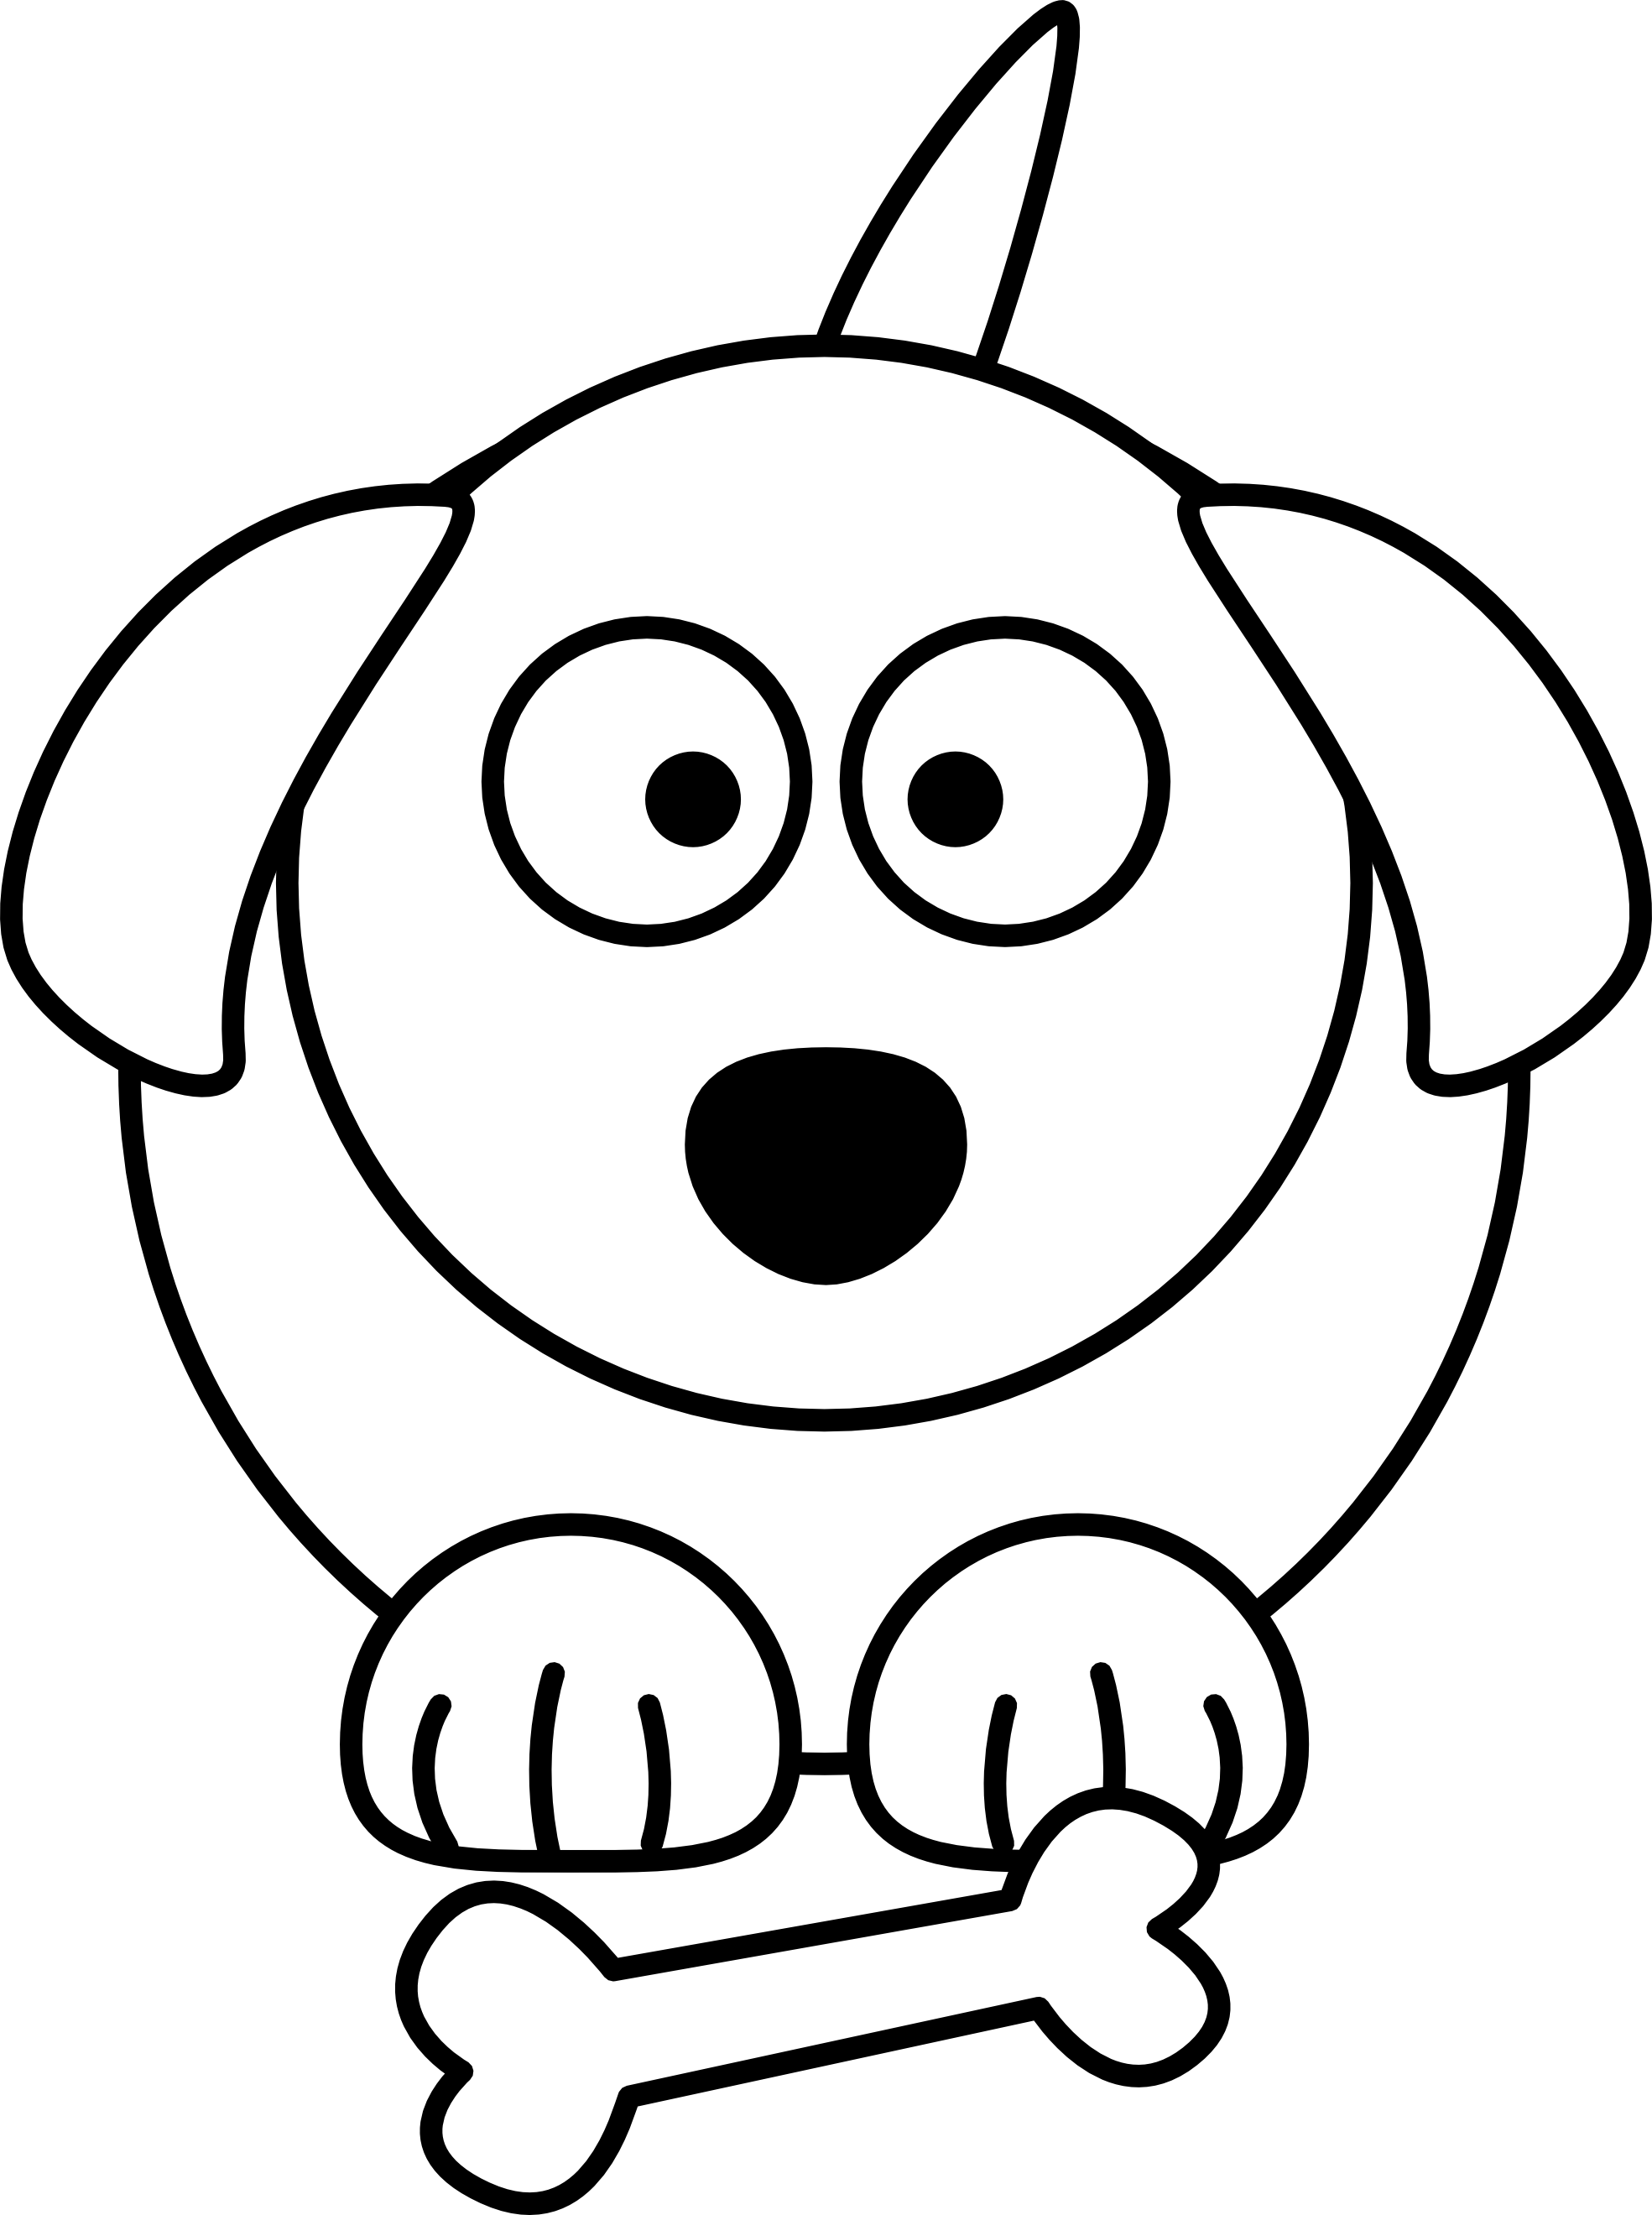 Line Drawings Of Cartoon Animals : Cartoon white dog cliparts